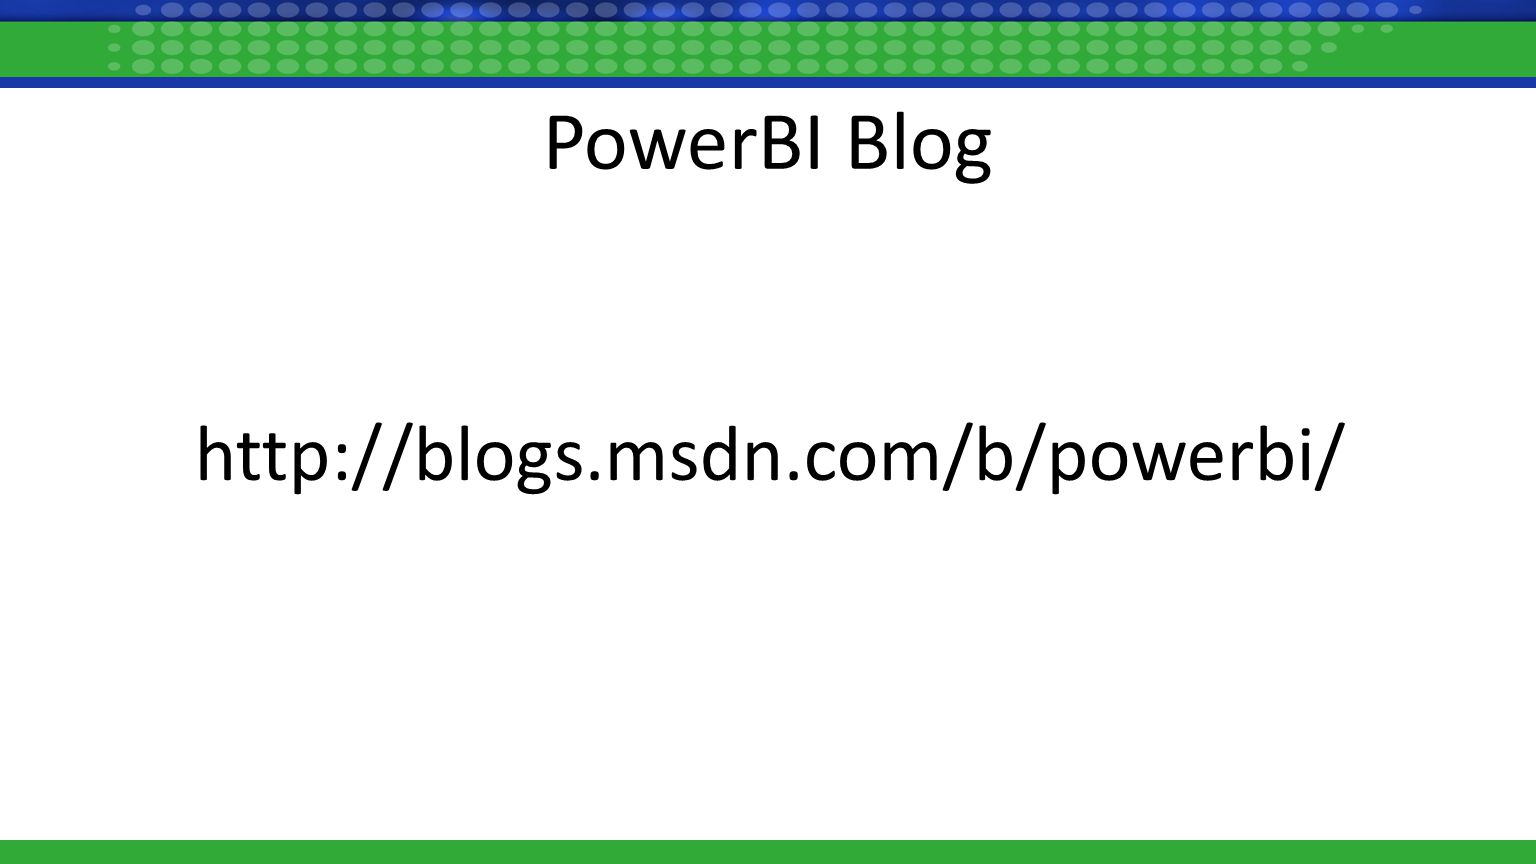 PowerBI Blog http://blogs.msdn.com/b/powerbi/